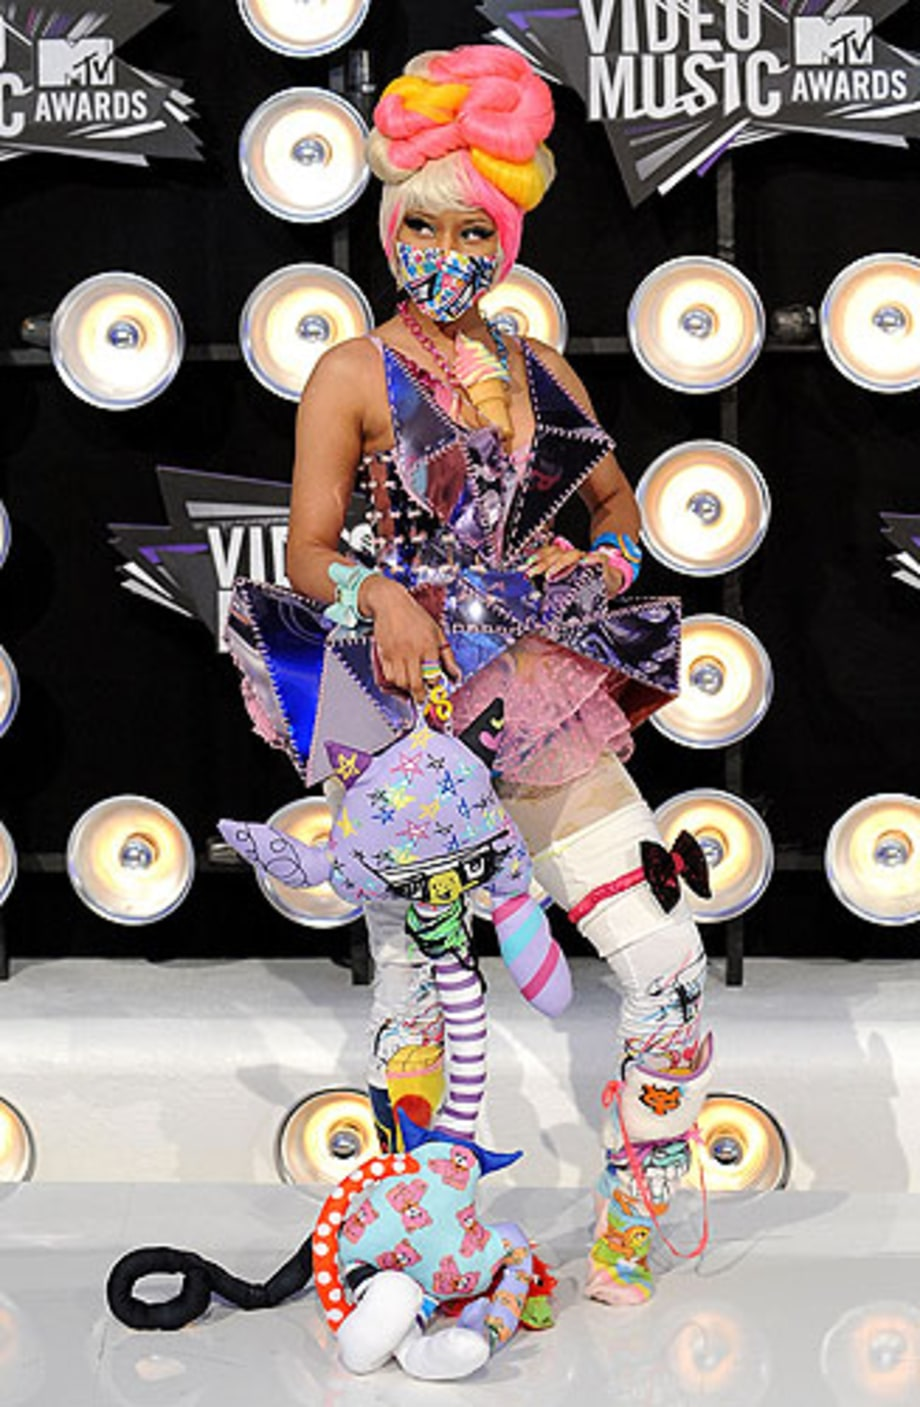 Most Confusing: Nicki Minaj